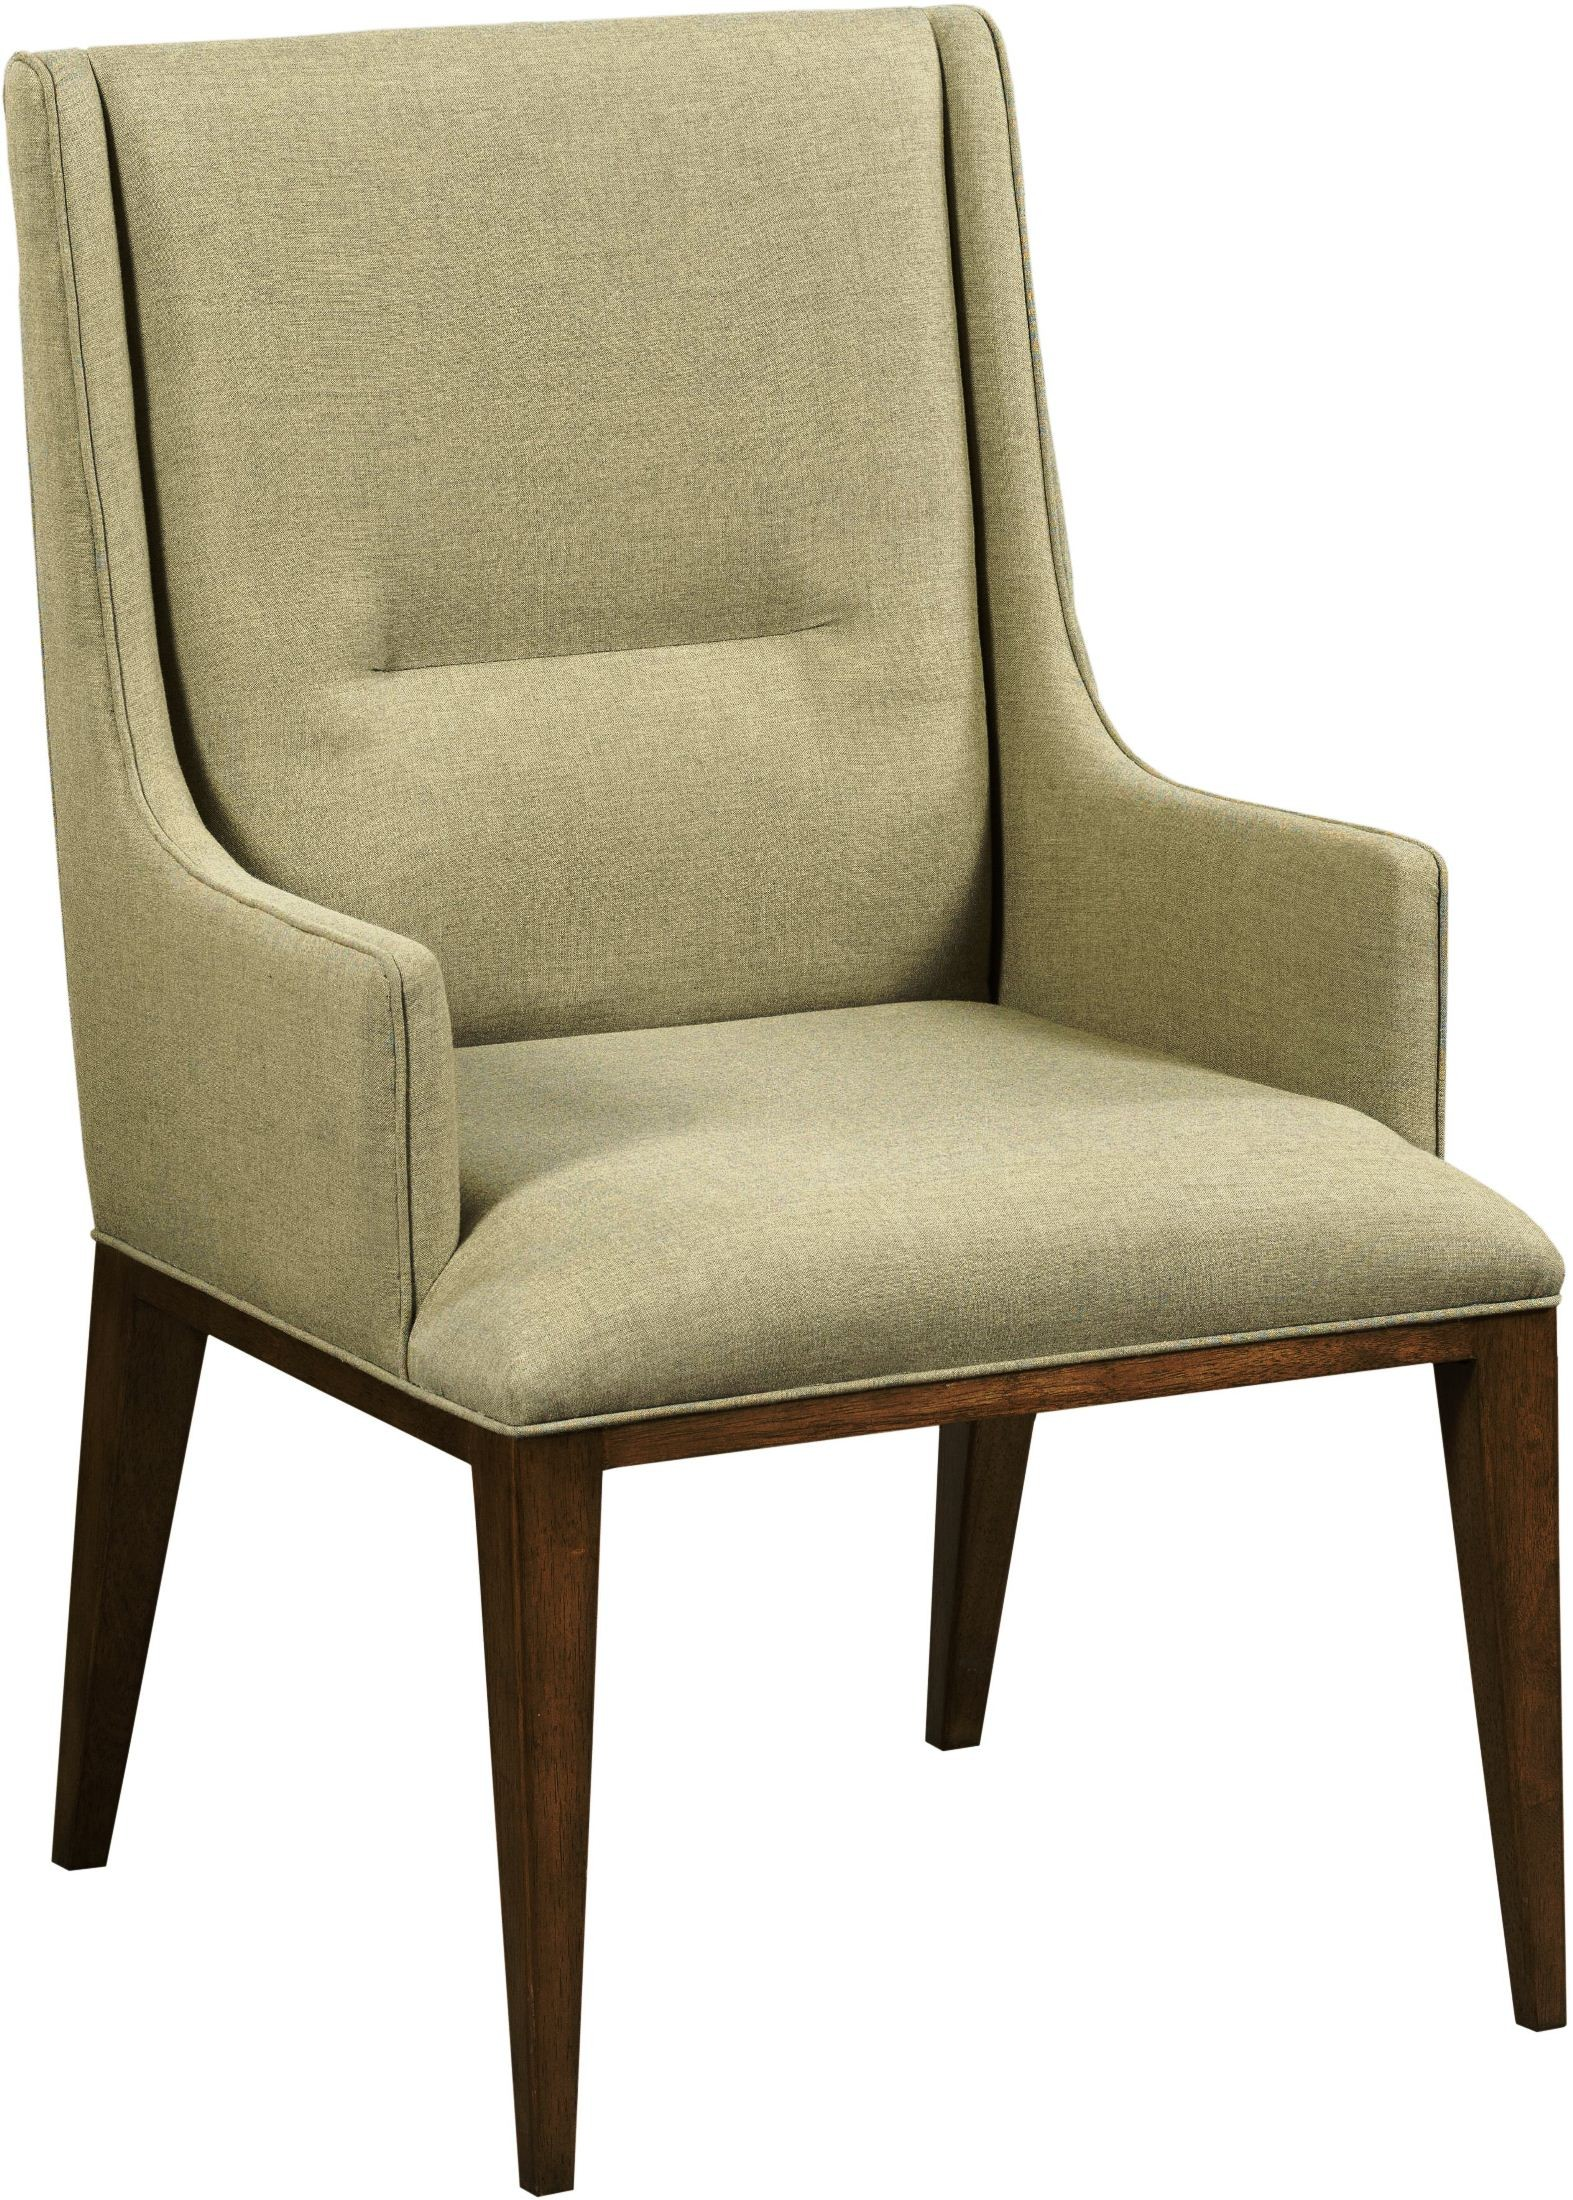 Ad modern synergy cream contour arm chair set of 2 from for Modern arm chair